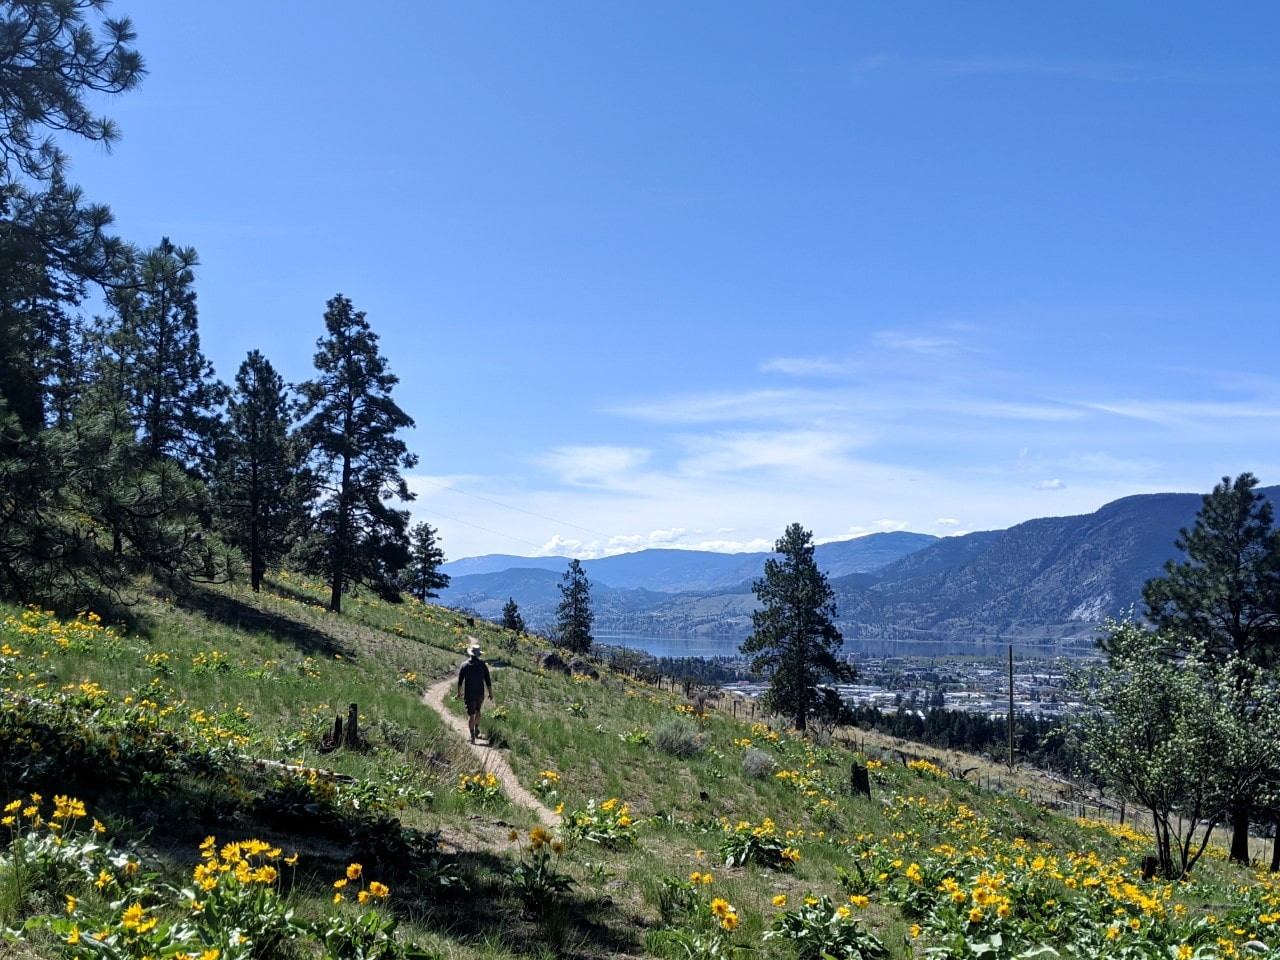 JR walking on narrow hiking trail lined with yellow wildflowers with lake and town views in background